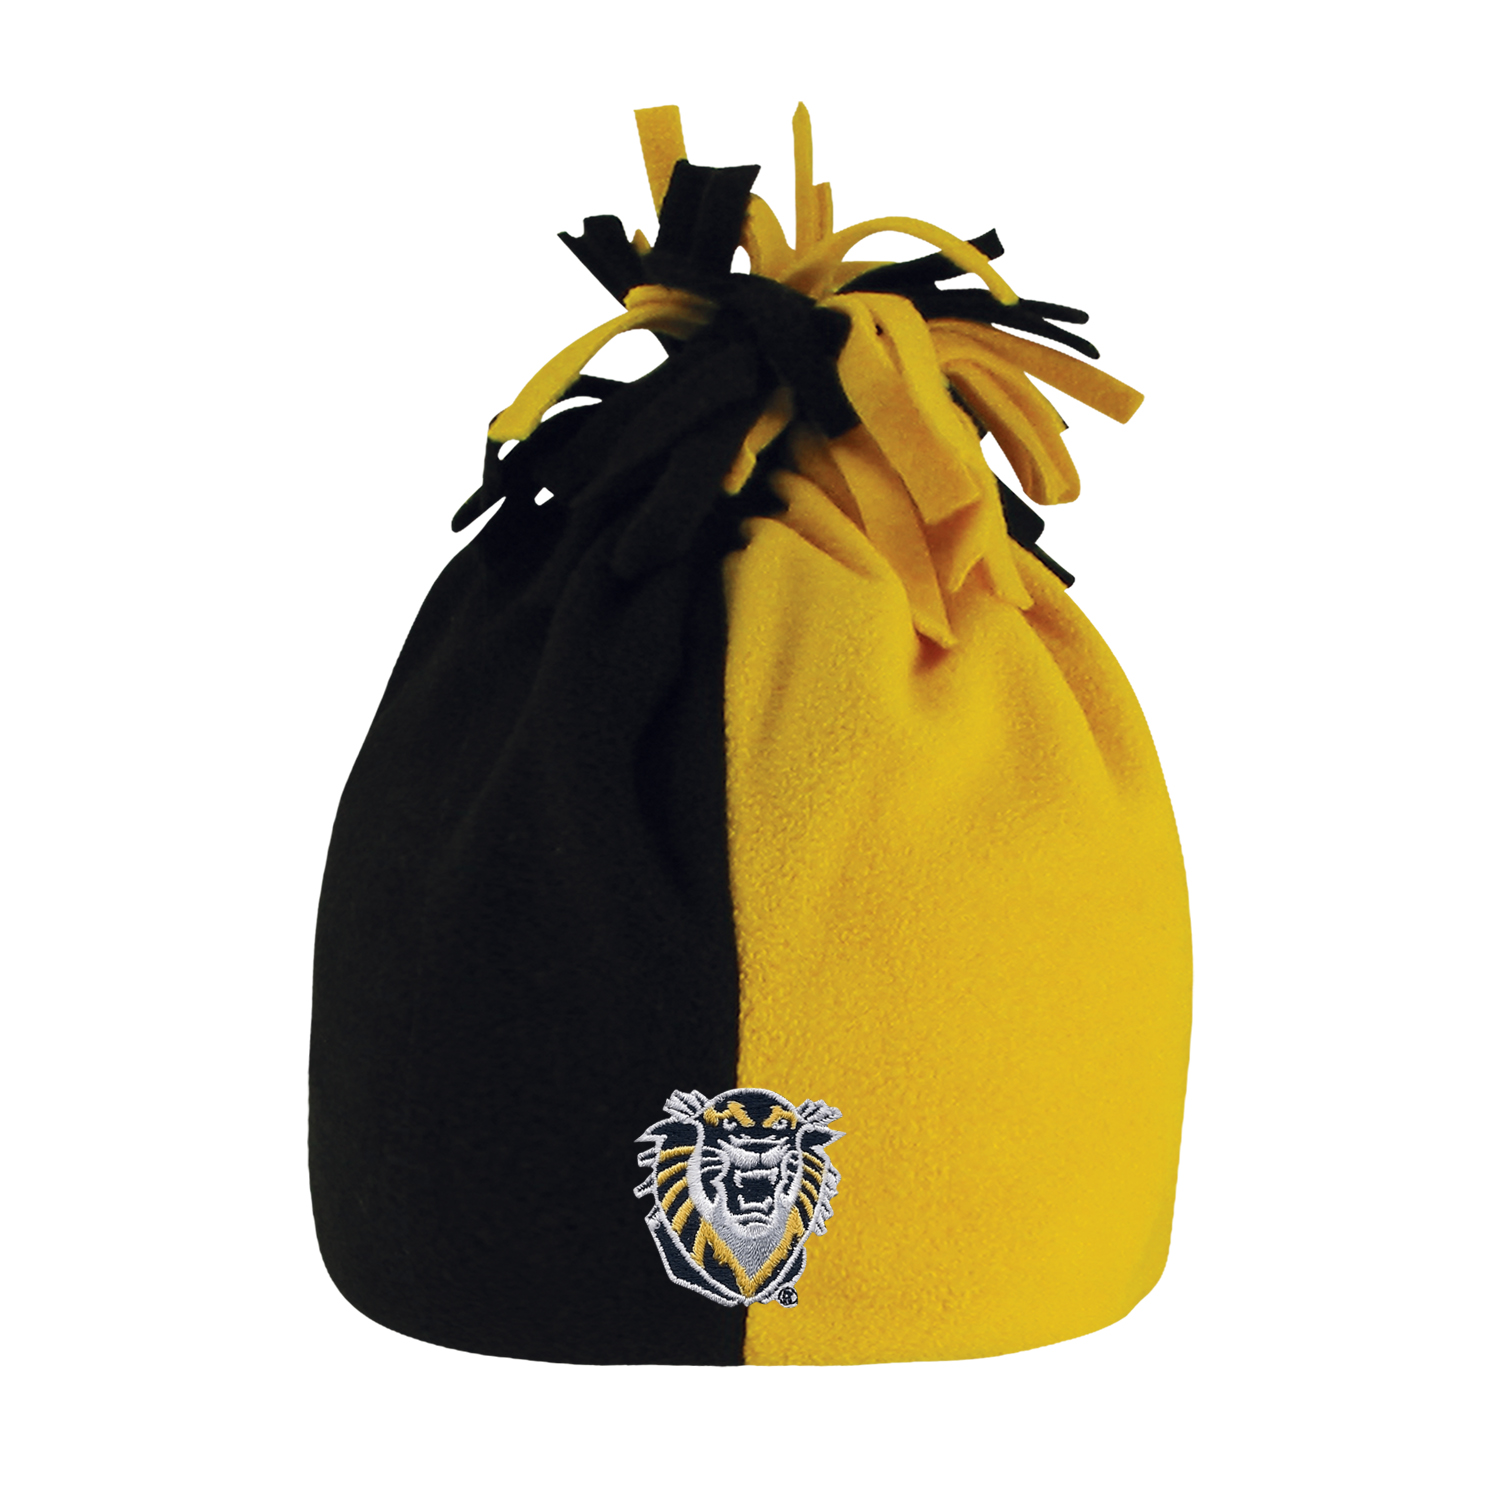 Image for the Toddler Two-Tone Noodles Hat product